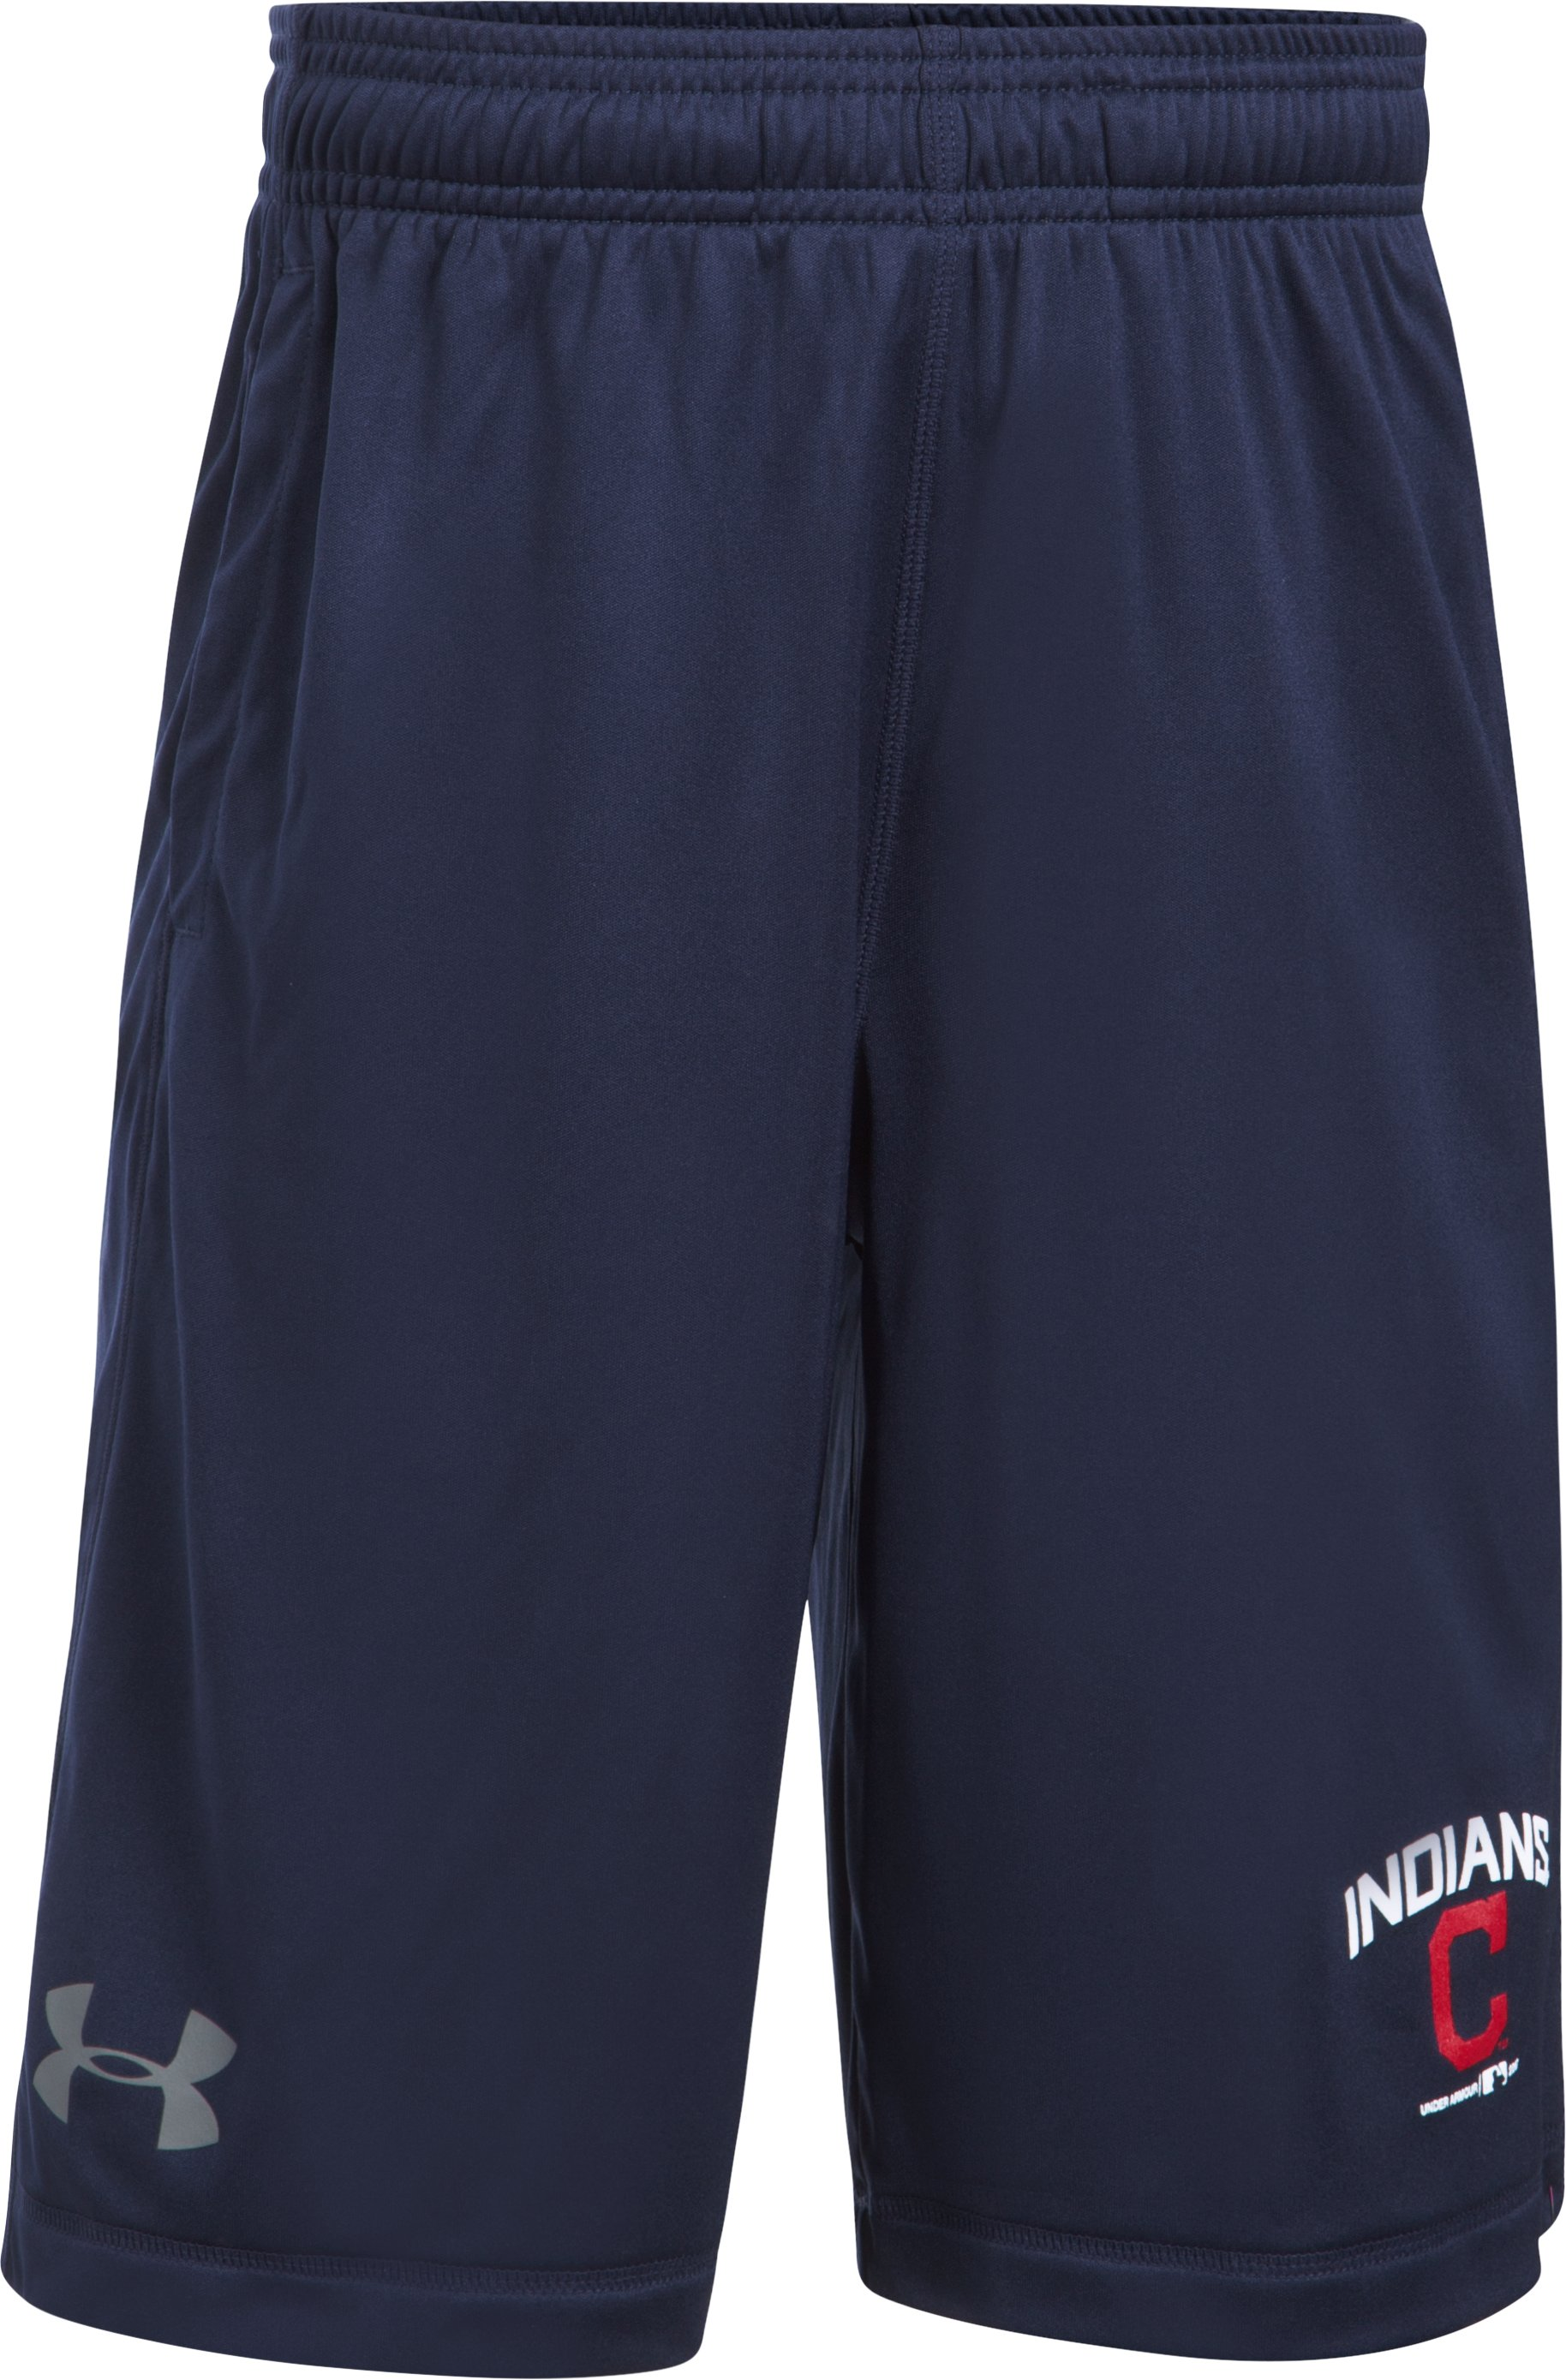 Boys' Cleveland Indians Training Shorts, Midnight Navy